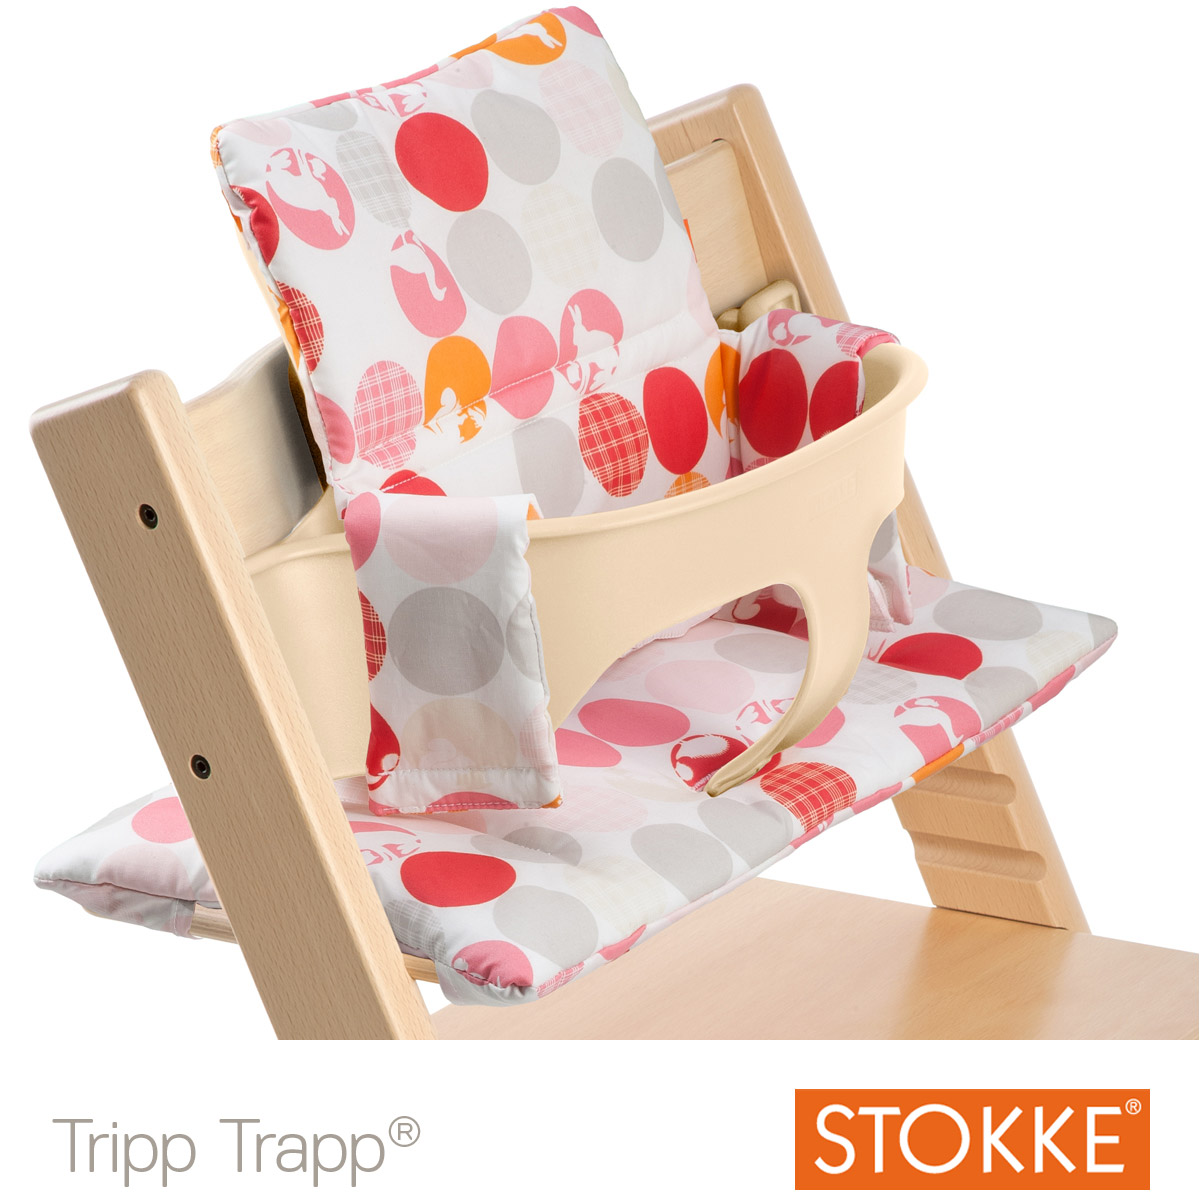 Chaise évolutive Tripp Trapp Pas Cher Chaise Haute Evolutive Stokke Great Chaise Haute